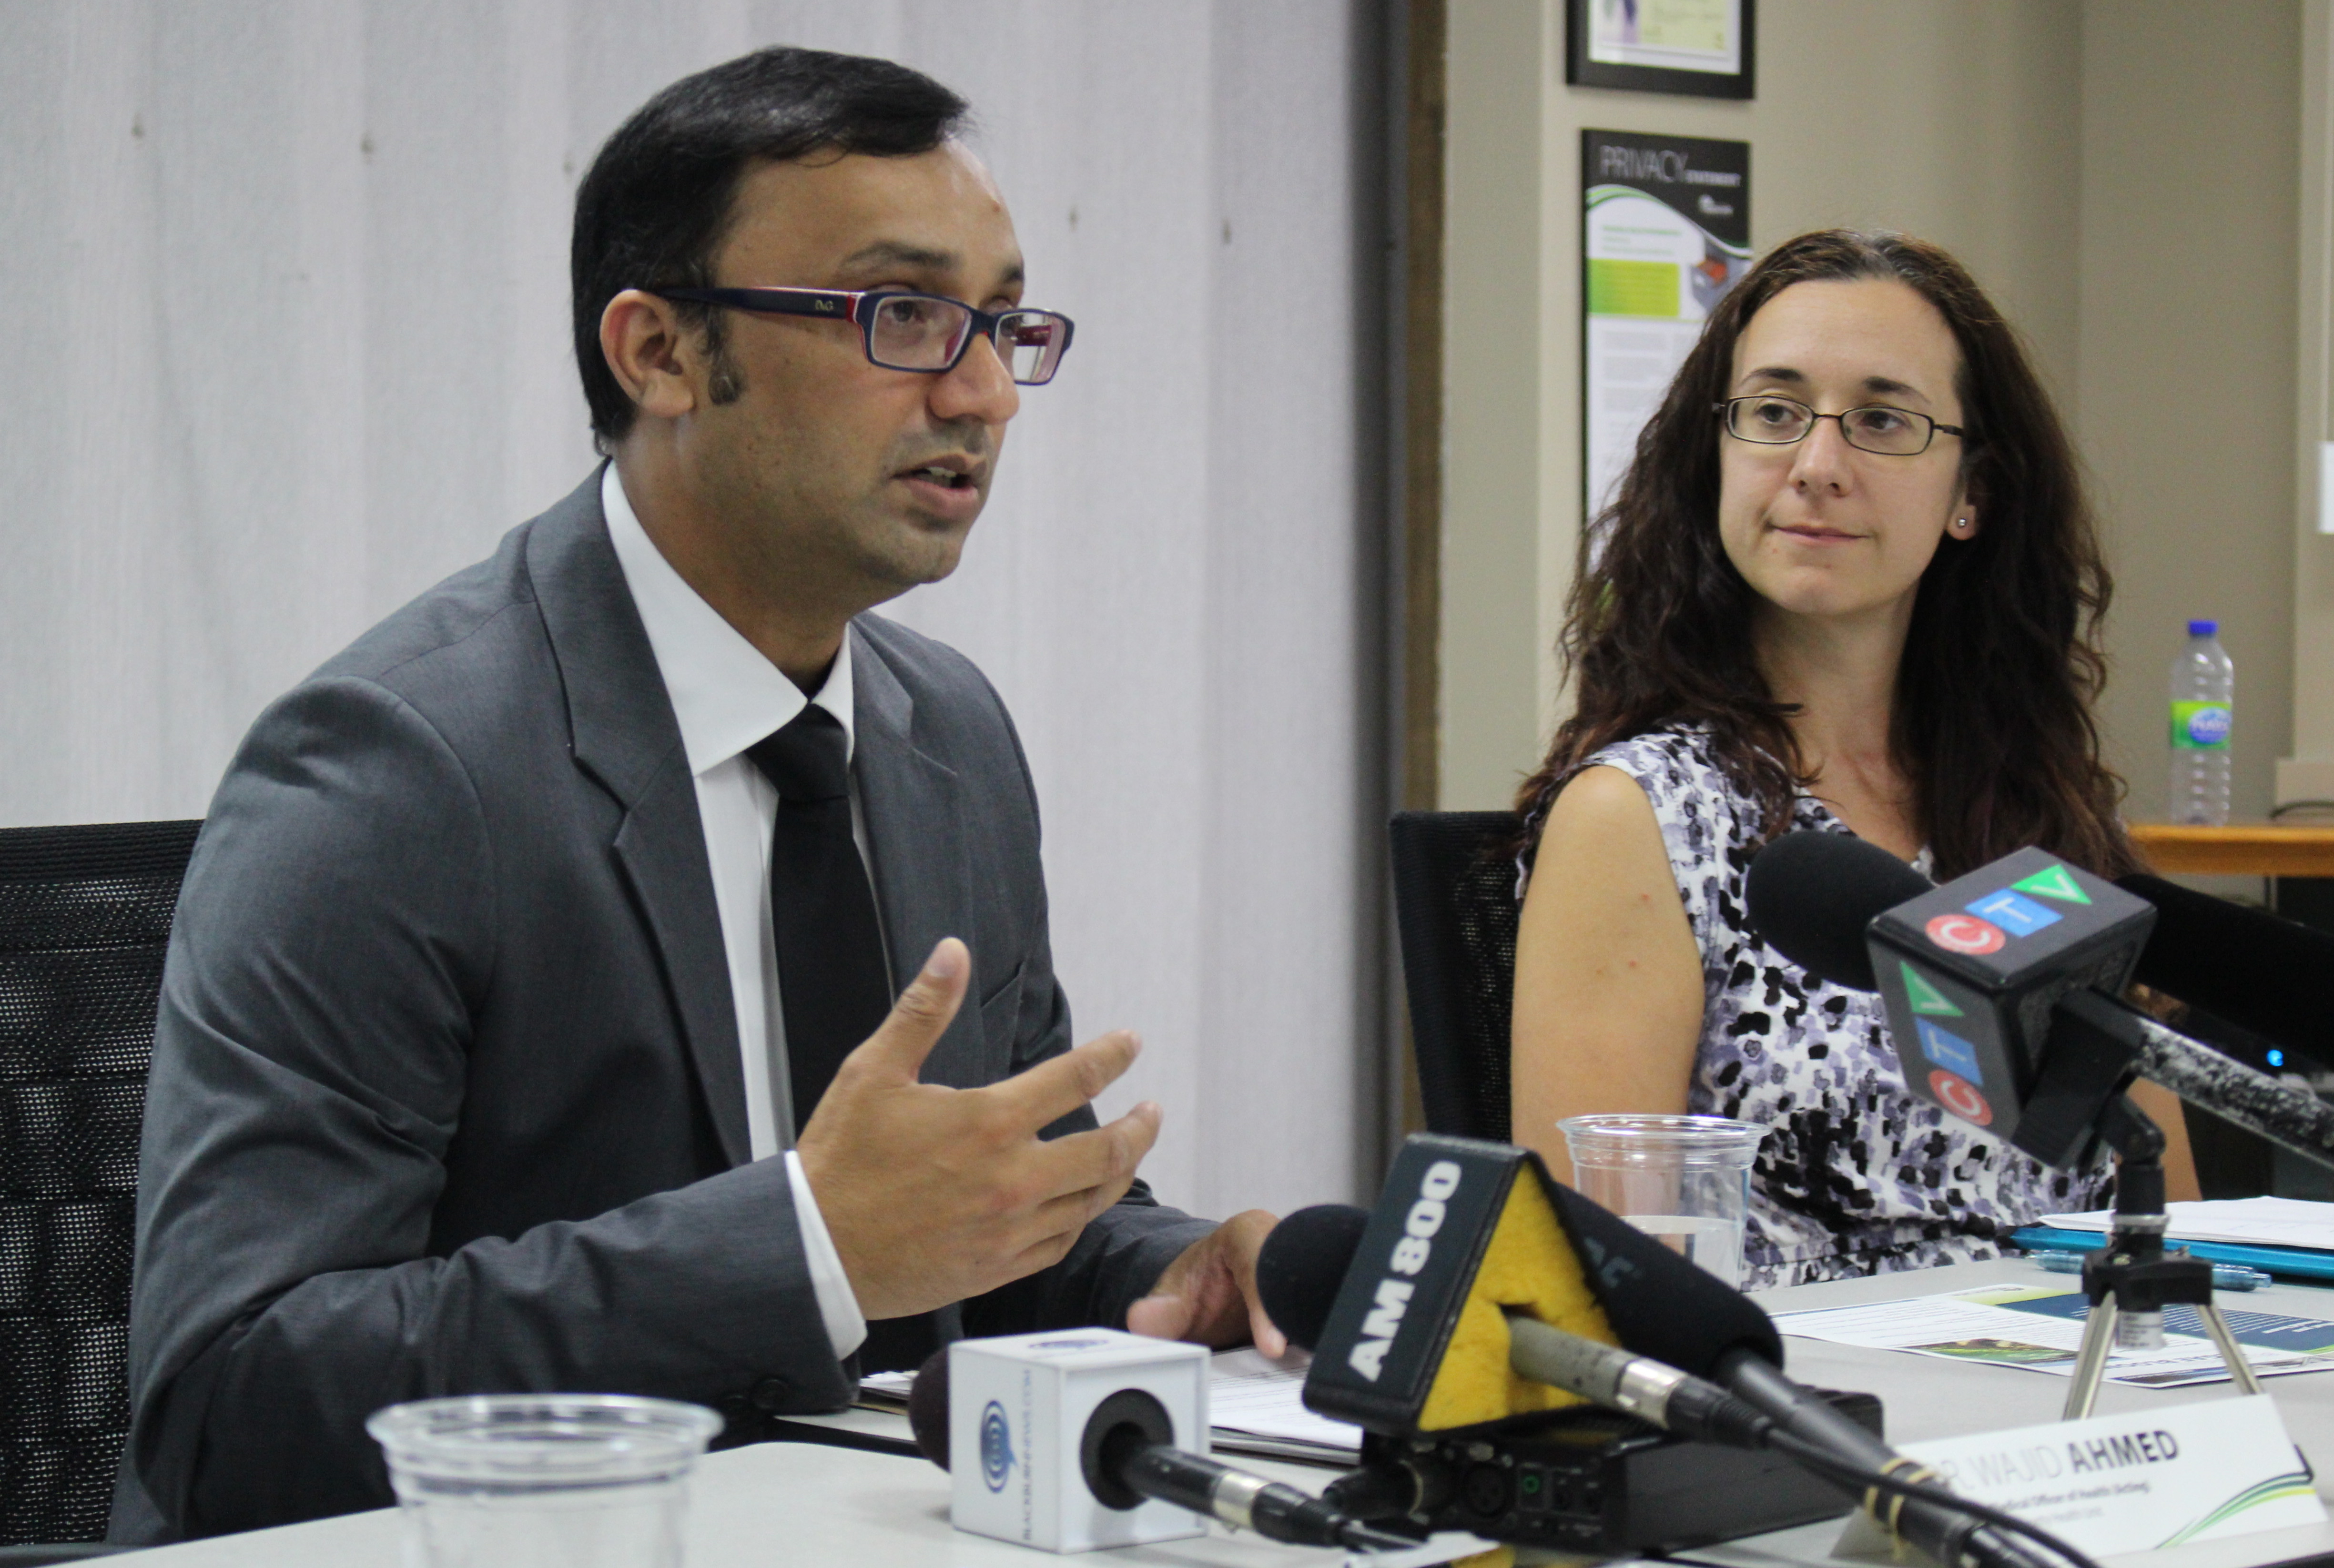 Medical Officer of Health Dr. Wajid Ahmed speaks, alongside Water Quality Scientist Katie Stammler, at the Windsor-Essex County Health Unit, July 24, 2015. (Photo by Mike Vlasveld)